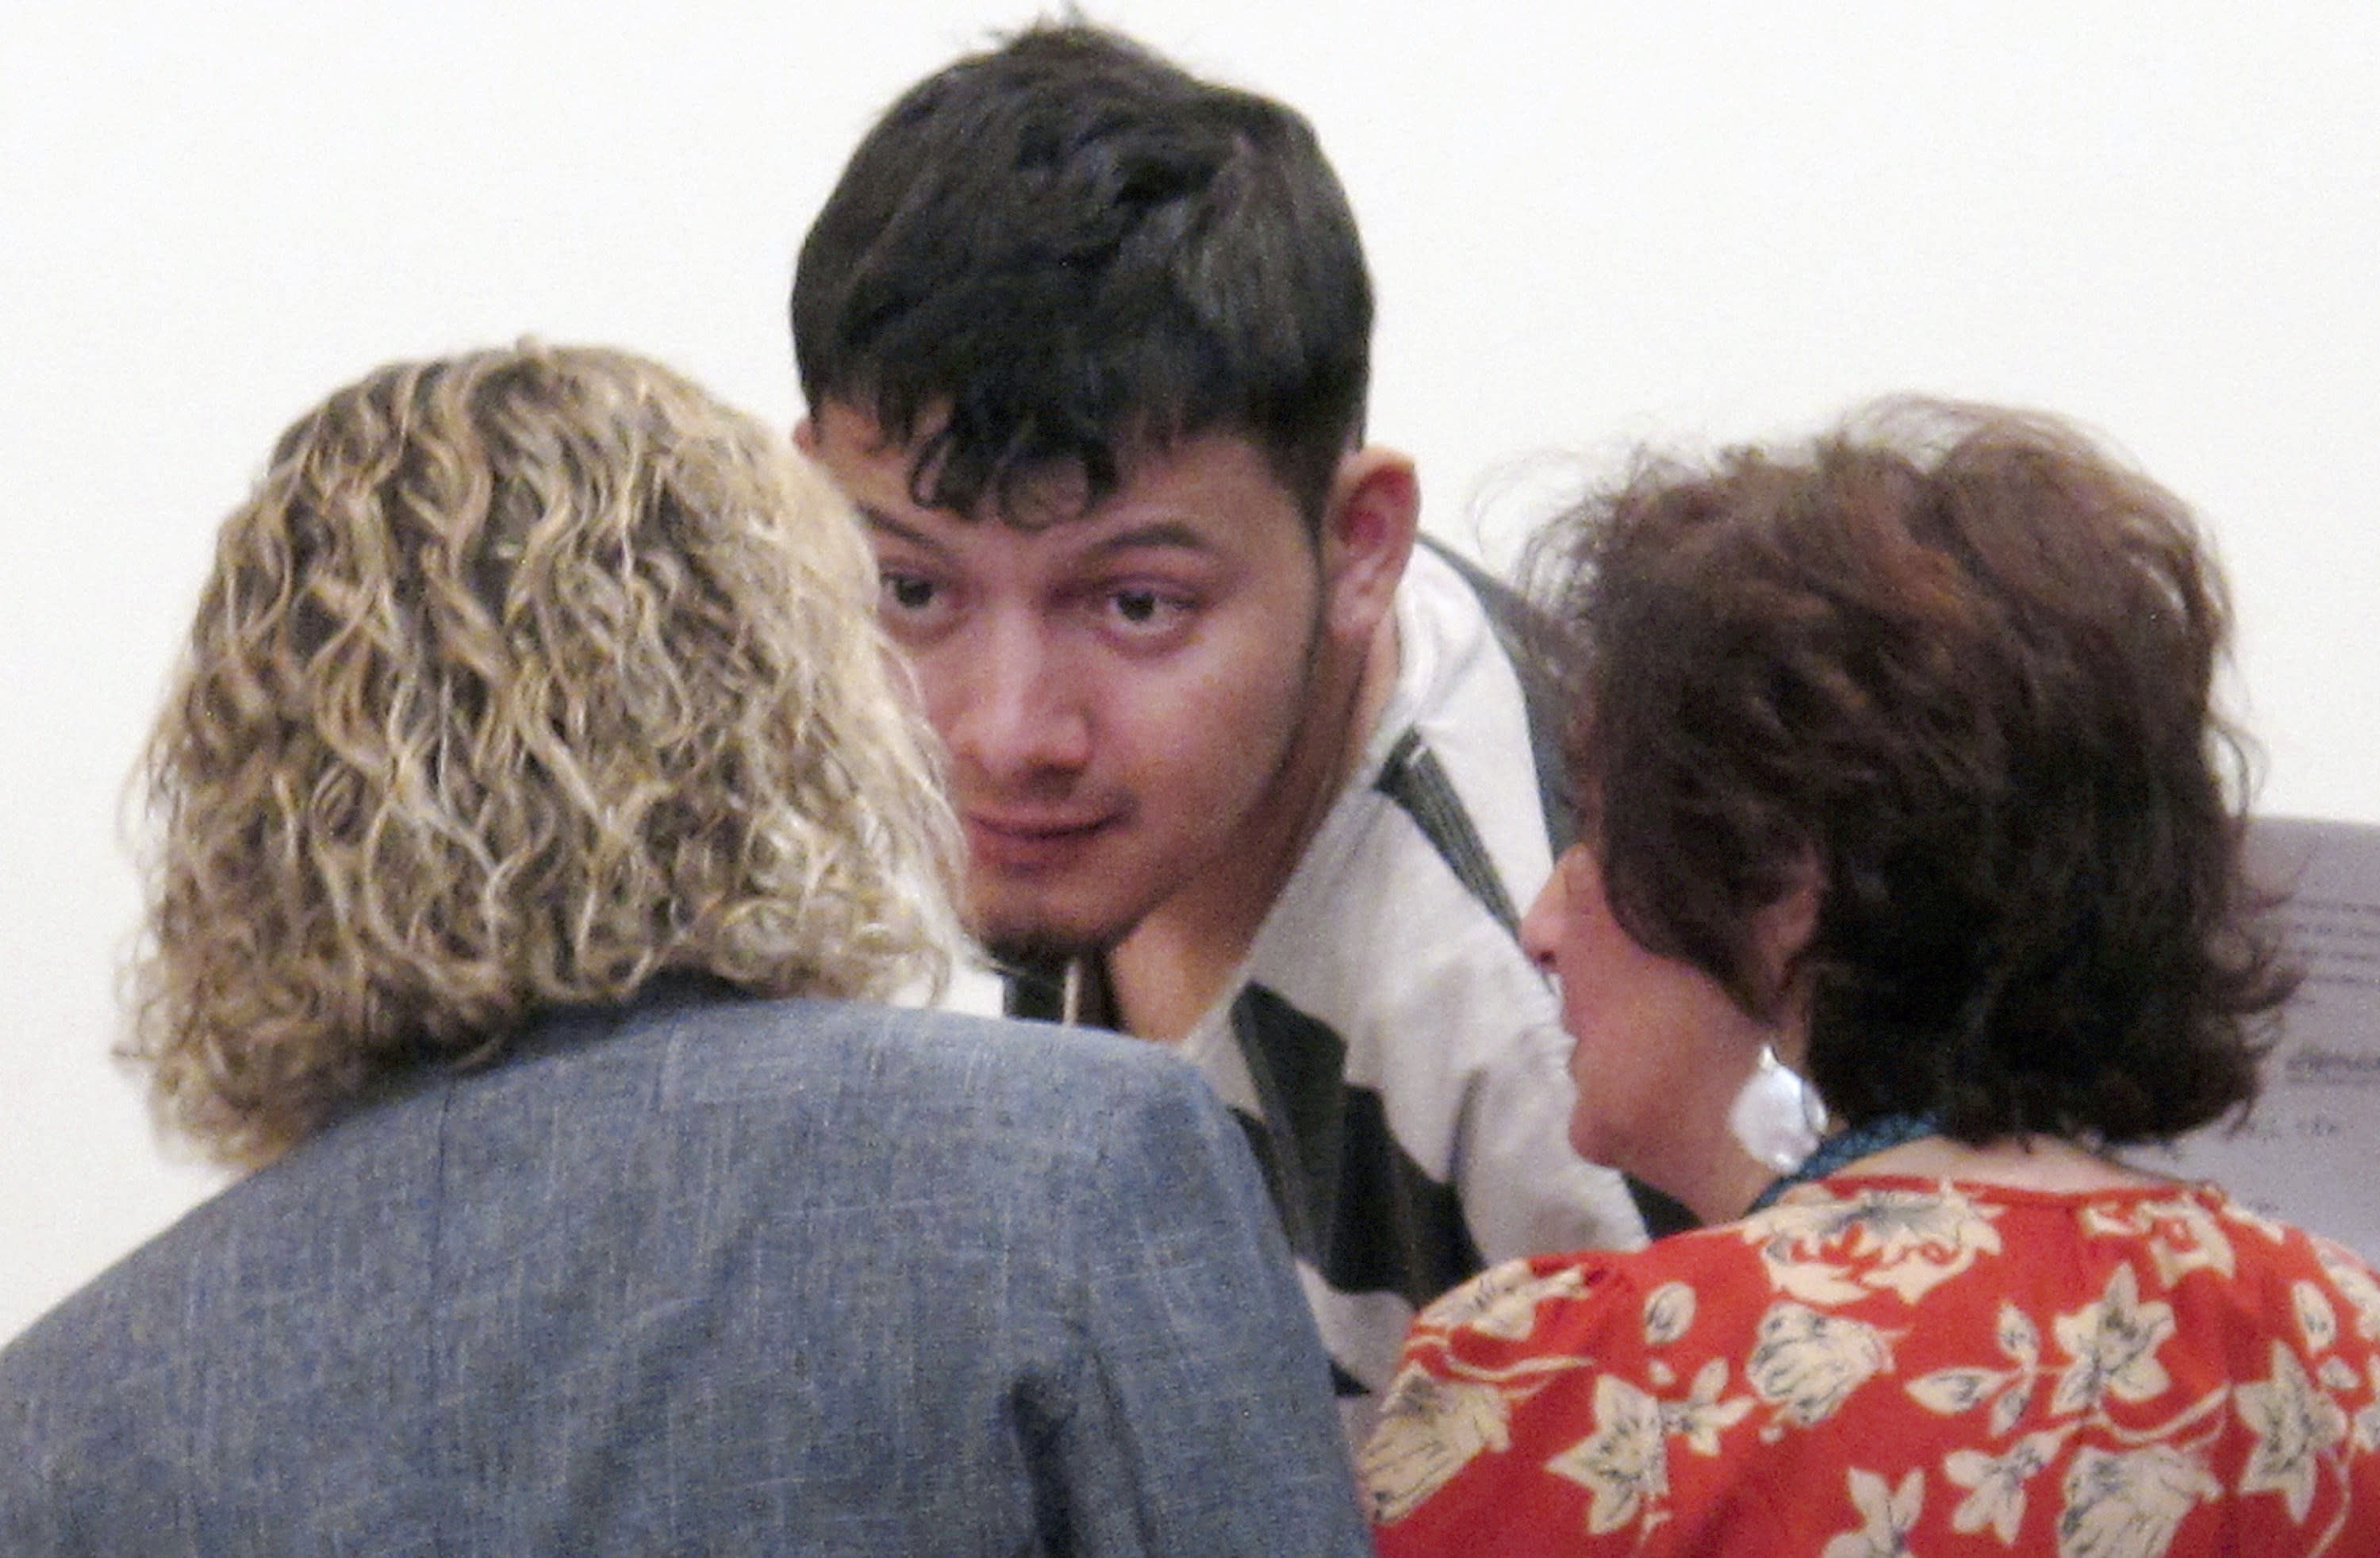 """FILE - In this Jan. 24, 2019 file photo, Wilber Ernesto Martinez-Guzman, 19, of El Salvador, talks to his public defender and interpreter during his initial appearance in Carson City Justice Court in Carson City, Nev. A detective says the Salvadoran immigrant charged with four Nevada murders told police he robbed and killed his elderly victims during a 10-day rampage in January because he needed money to buy methamphetamine. According to a grand jury transcript obtained by The Associated Press, the Reno detective testified last week that Martinez-Guzman broke into tears and repeatedly called himself an """"idiot"""" before confessing to the murders. (AP Photo/Scott Sonner, File)"""